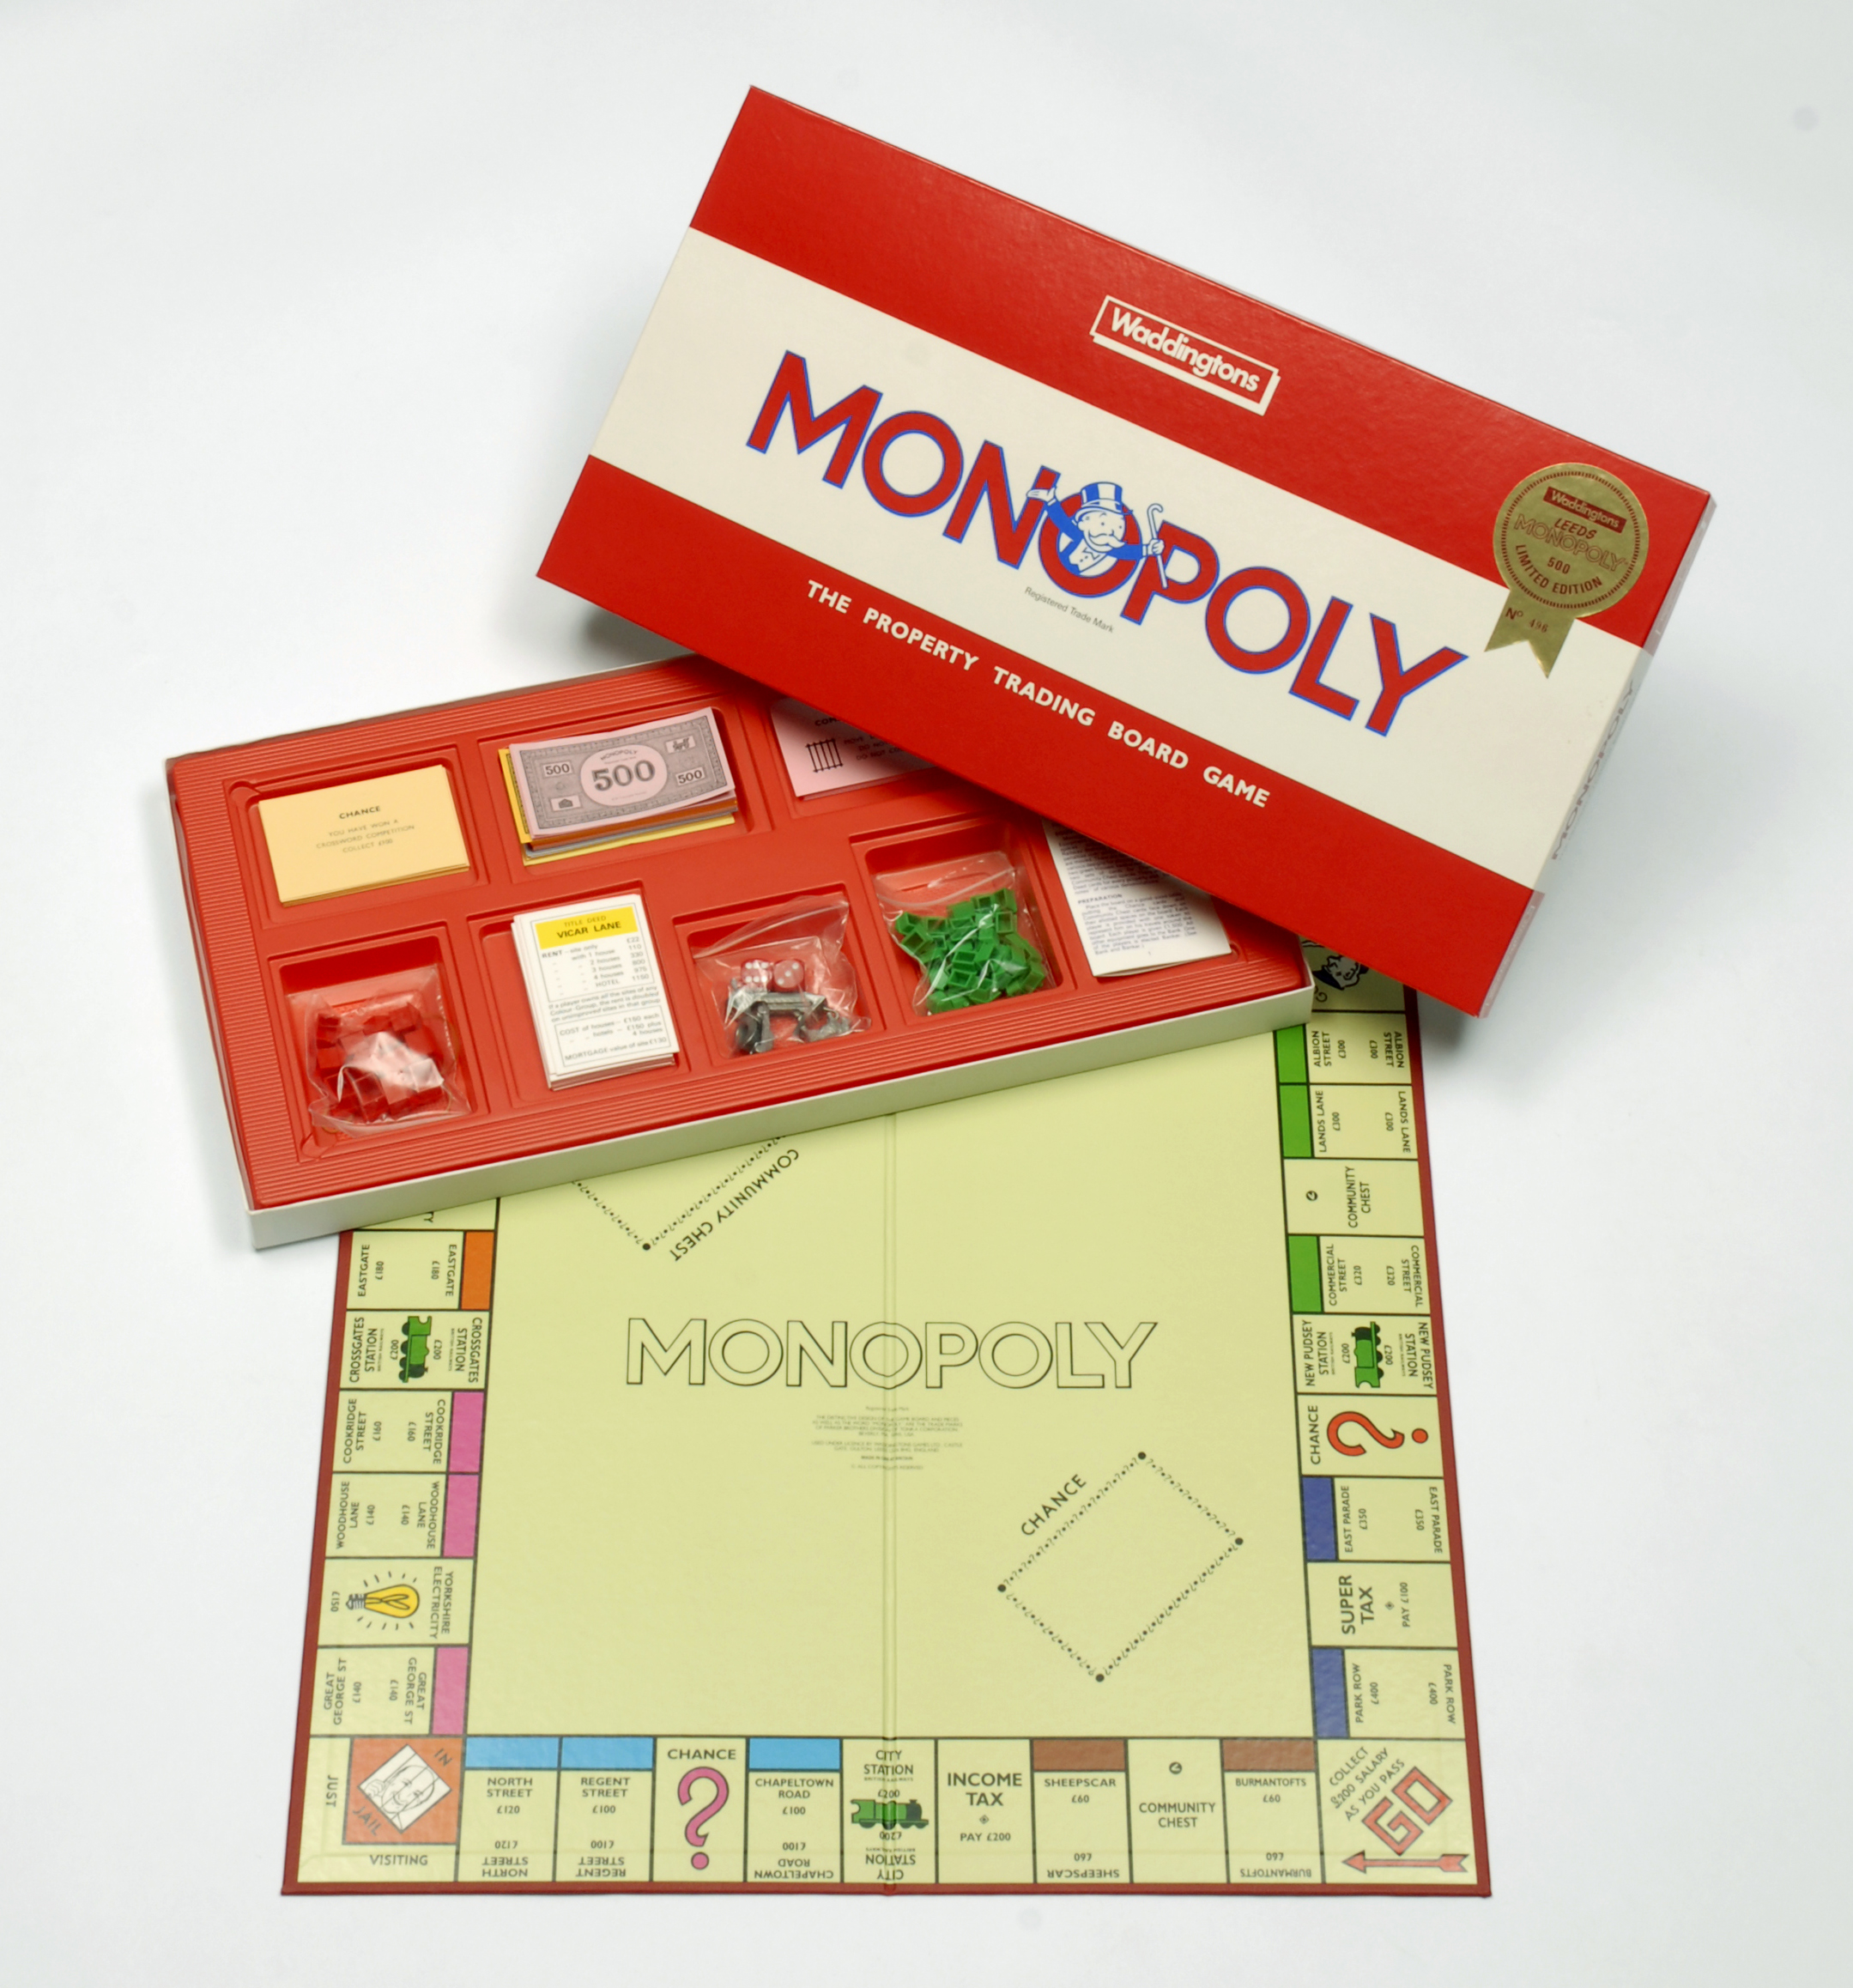 Leeds Monopoly set with street names from the city.